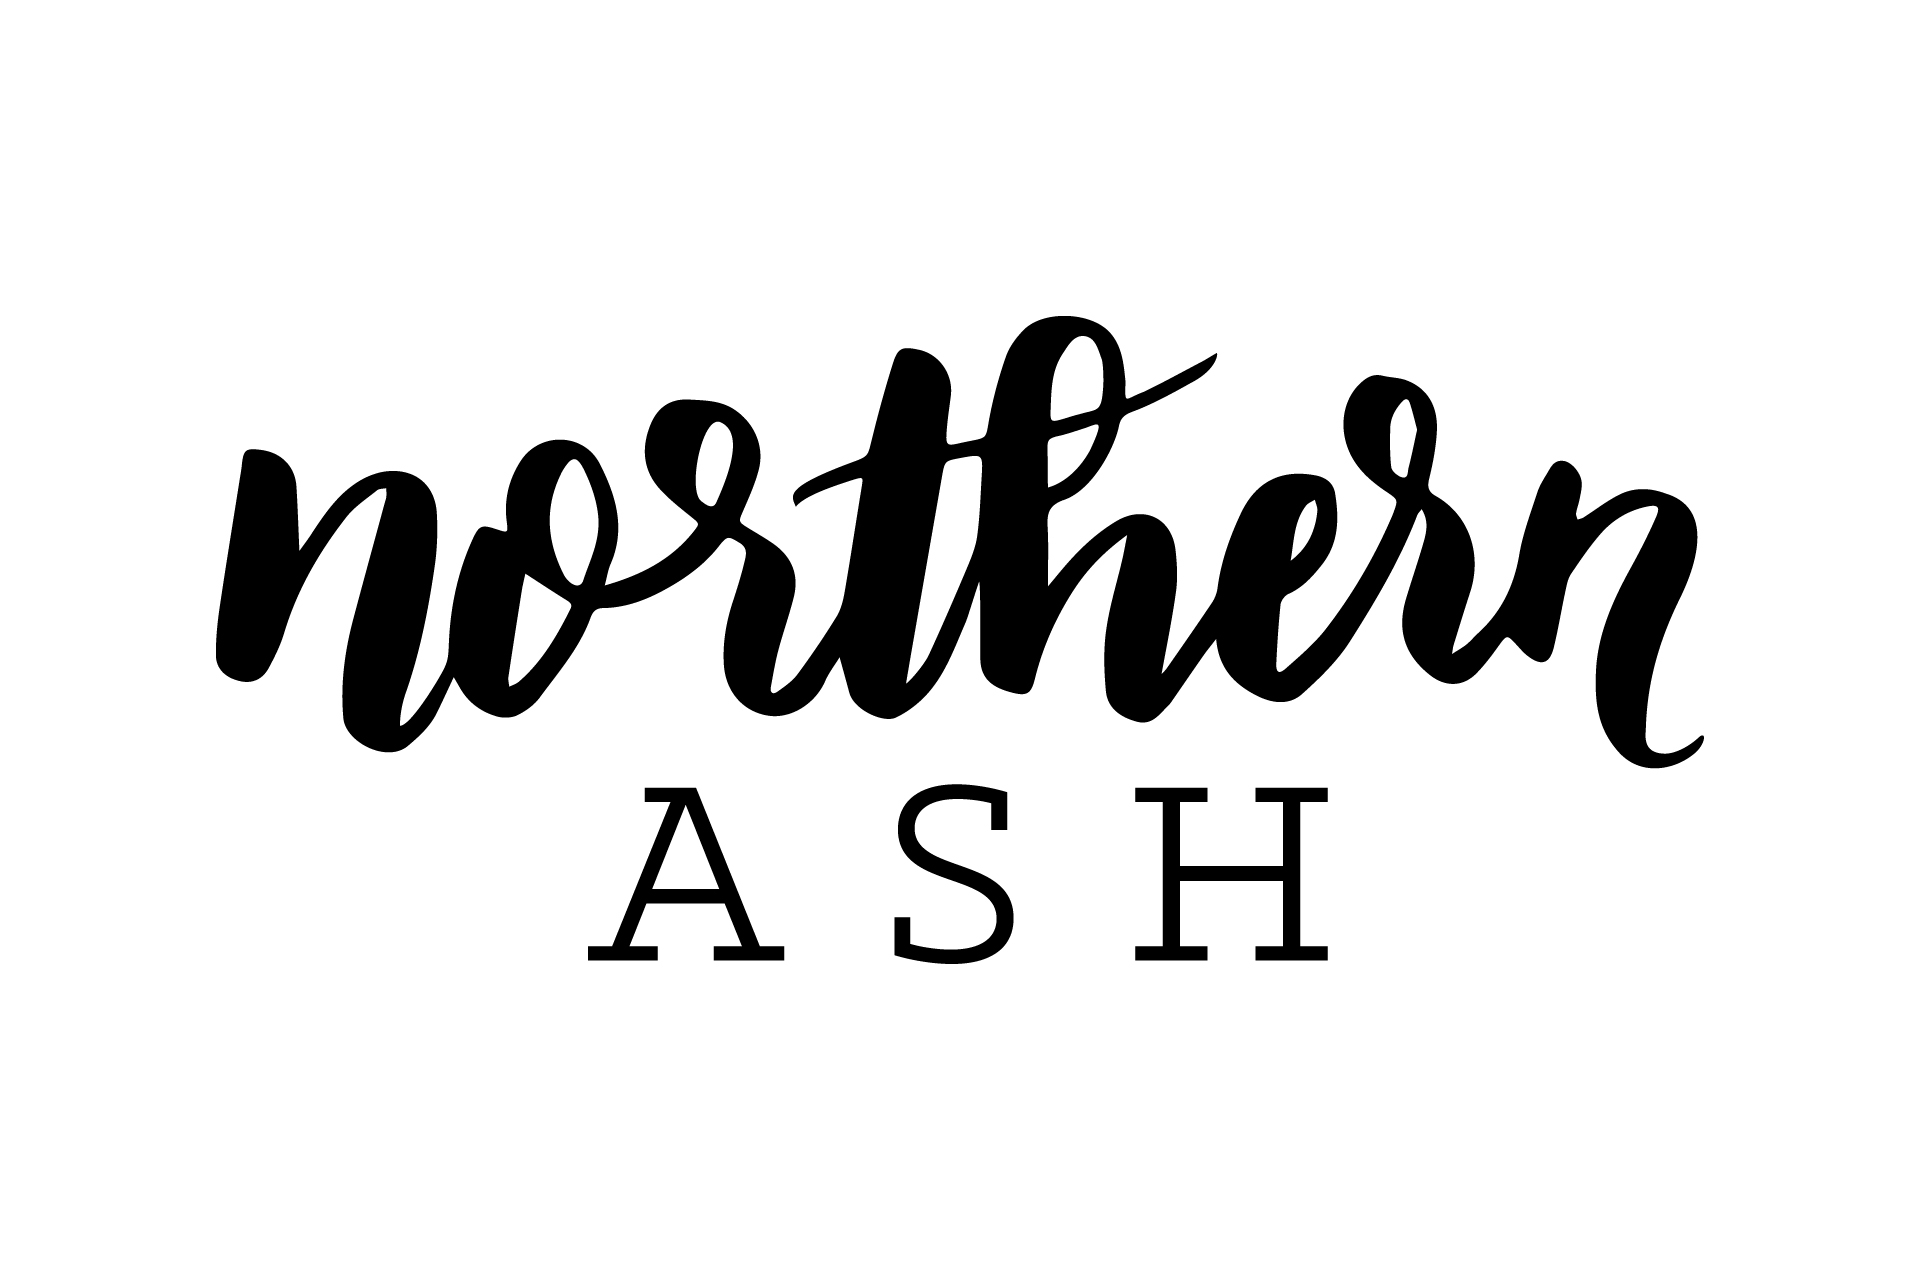 Our Village: Northern Ash